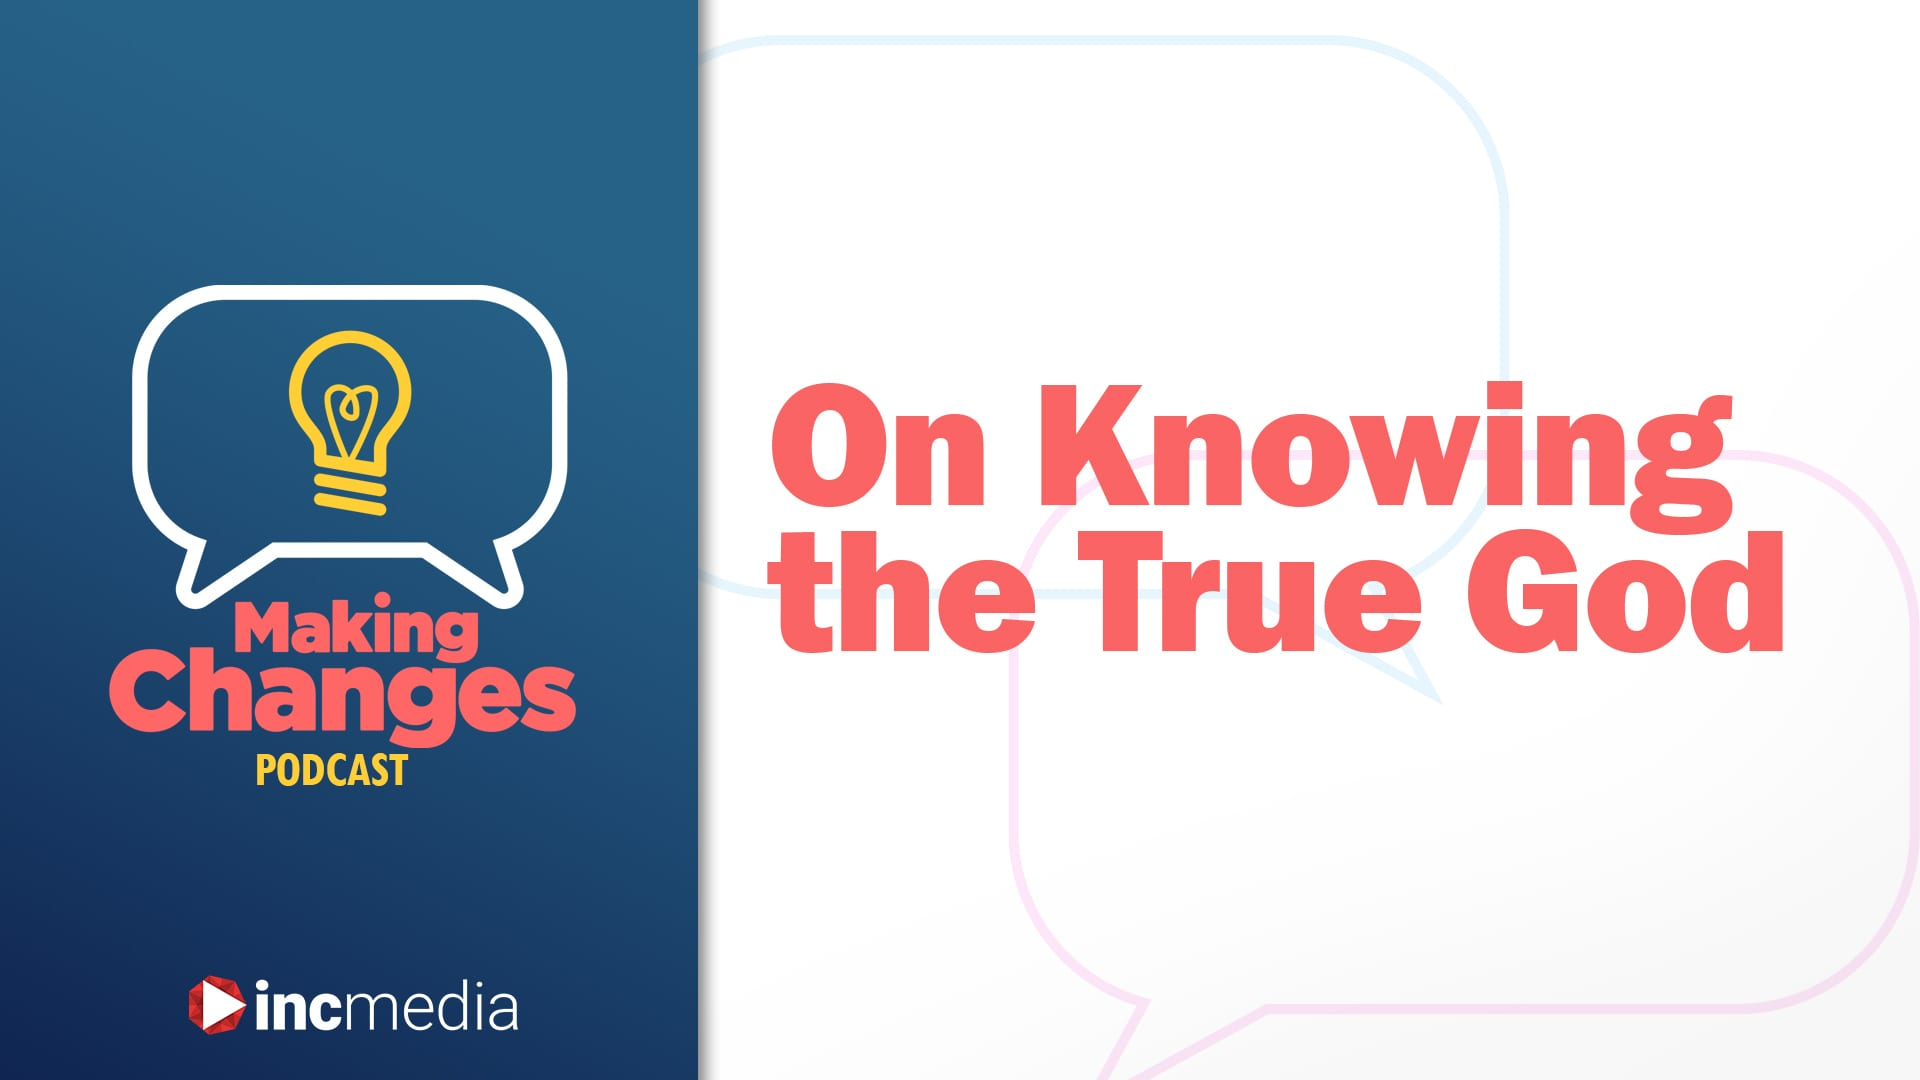 making changes podcast episode banner with title, On Knowing the true God